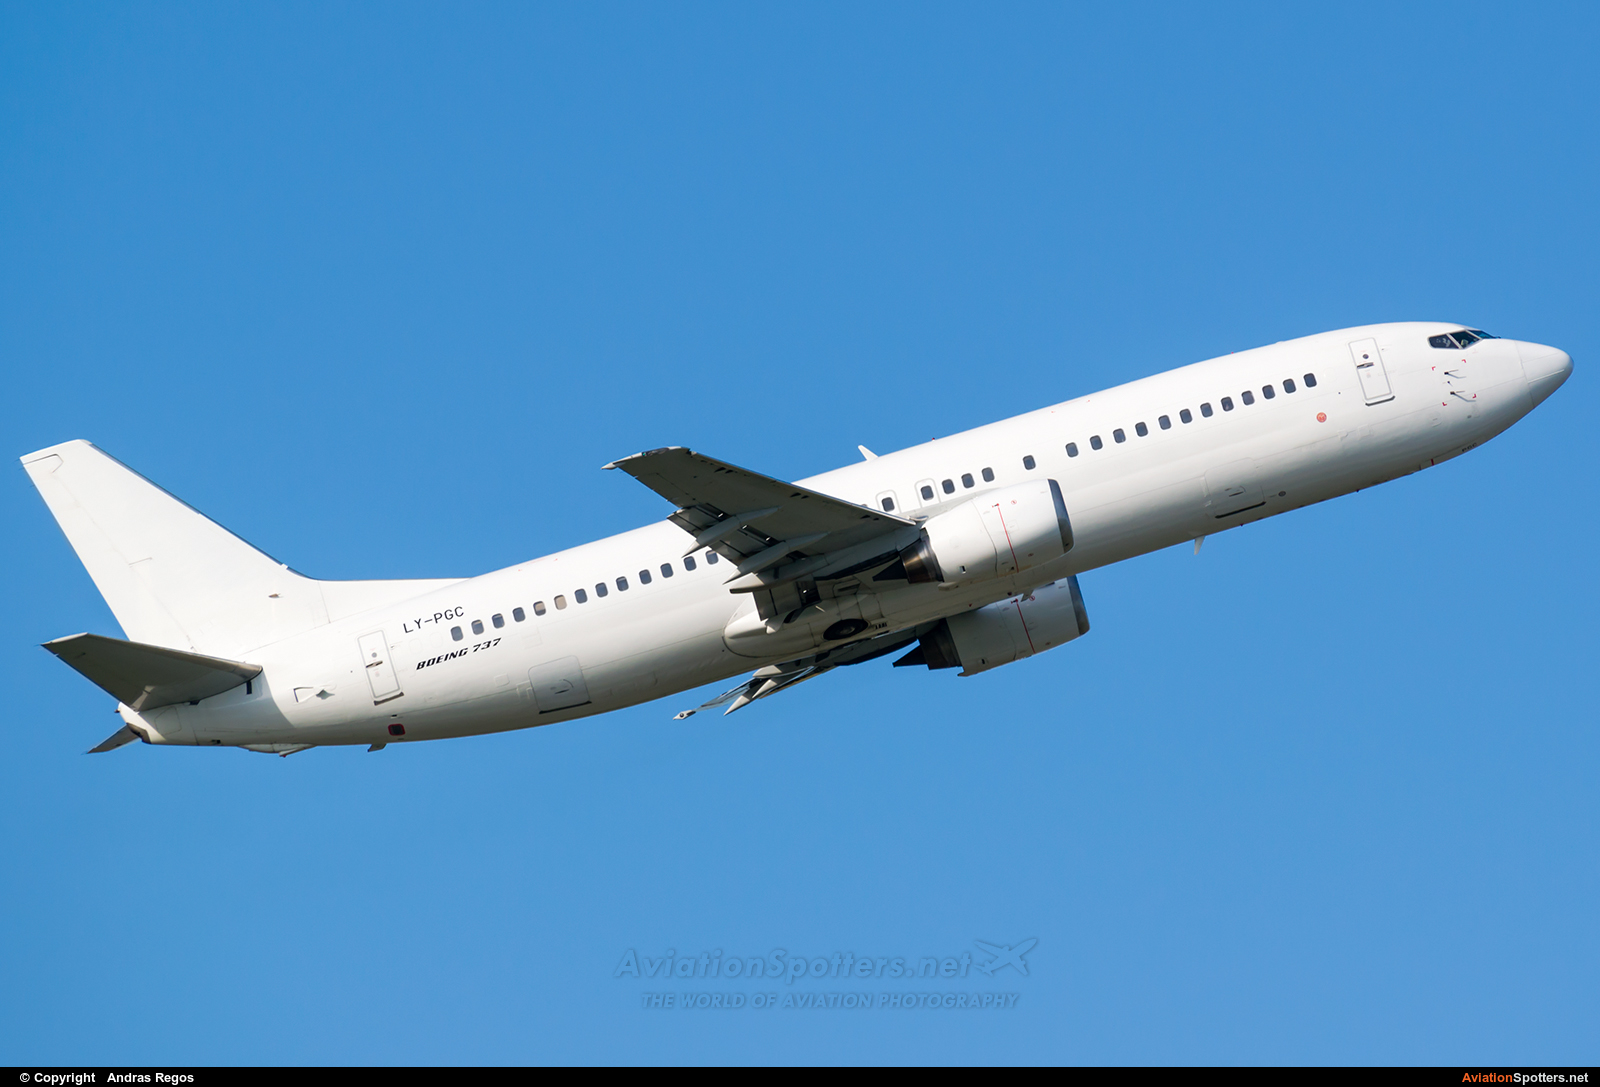 GetJet Airlines  -  737-400  (LY-PGC) By Andras Regos (regos)